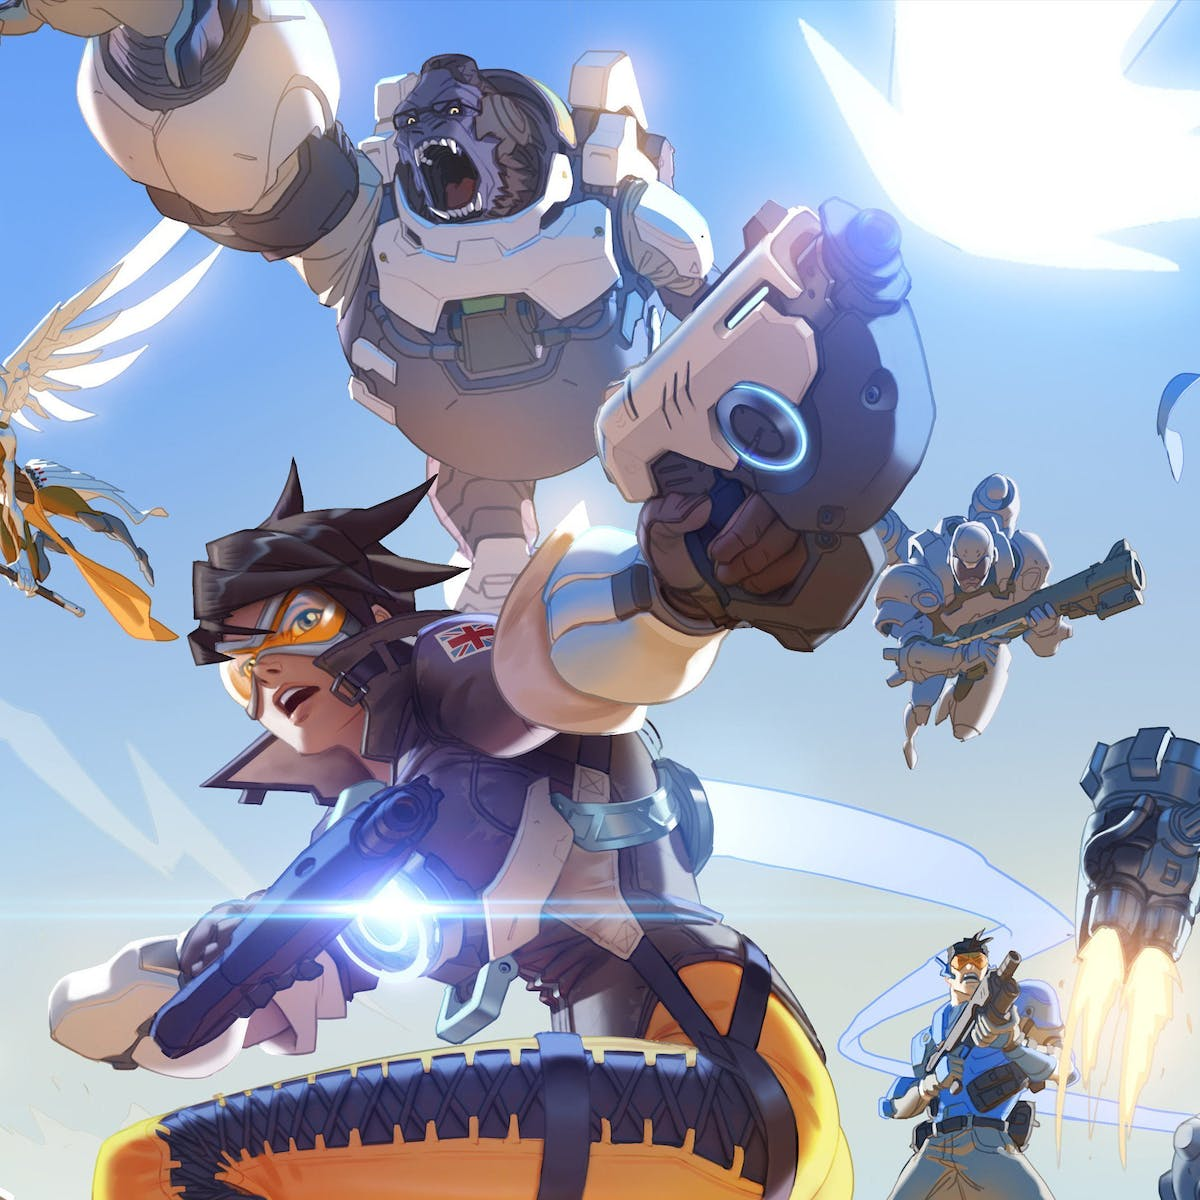 Overwatch Workshop: 5 of the Most Creative Mini-Games We've Seen